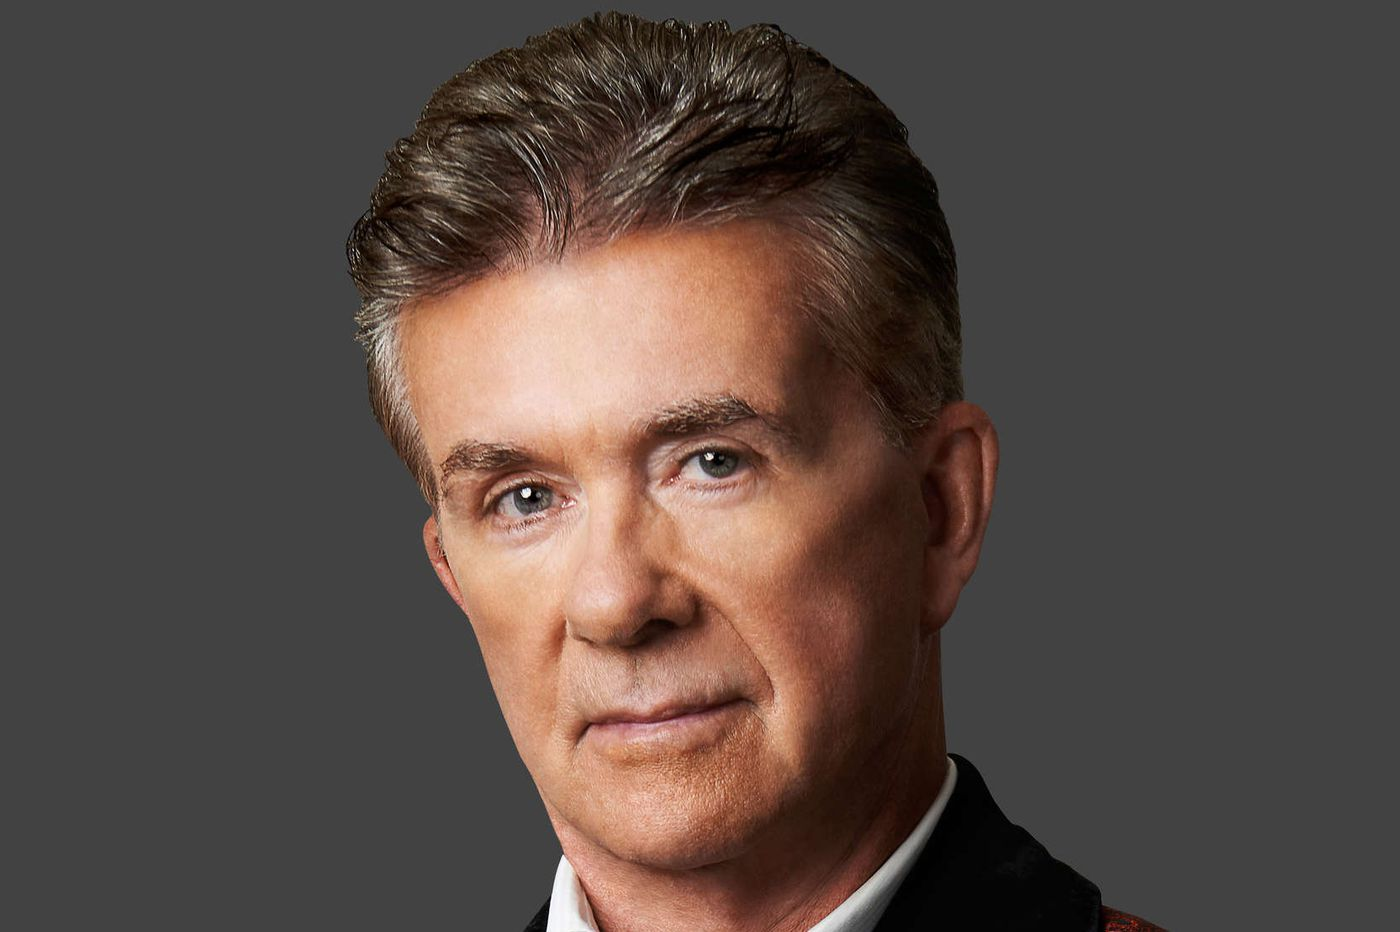 Alan Thicke, sitcom star and host of talk shows